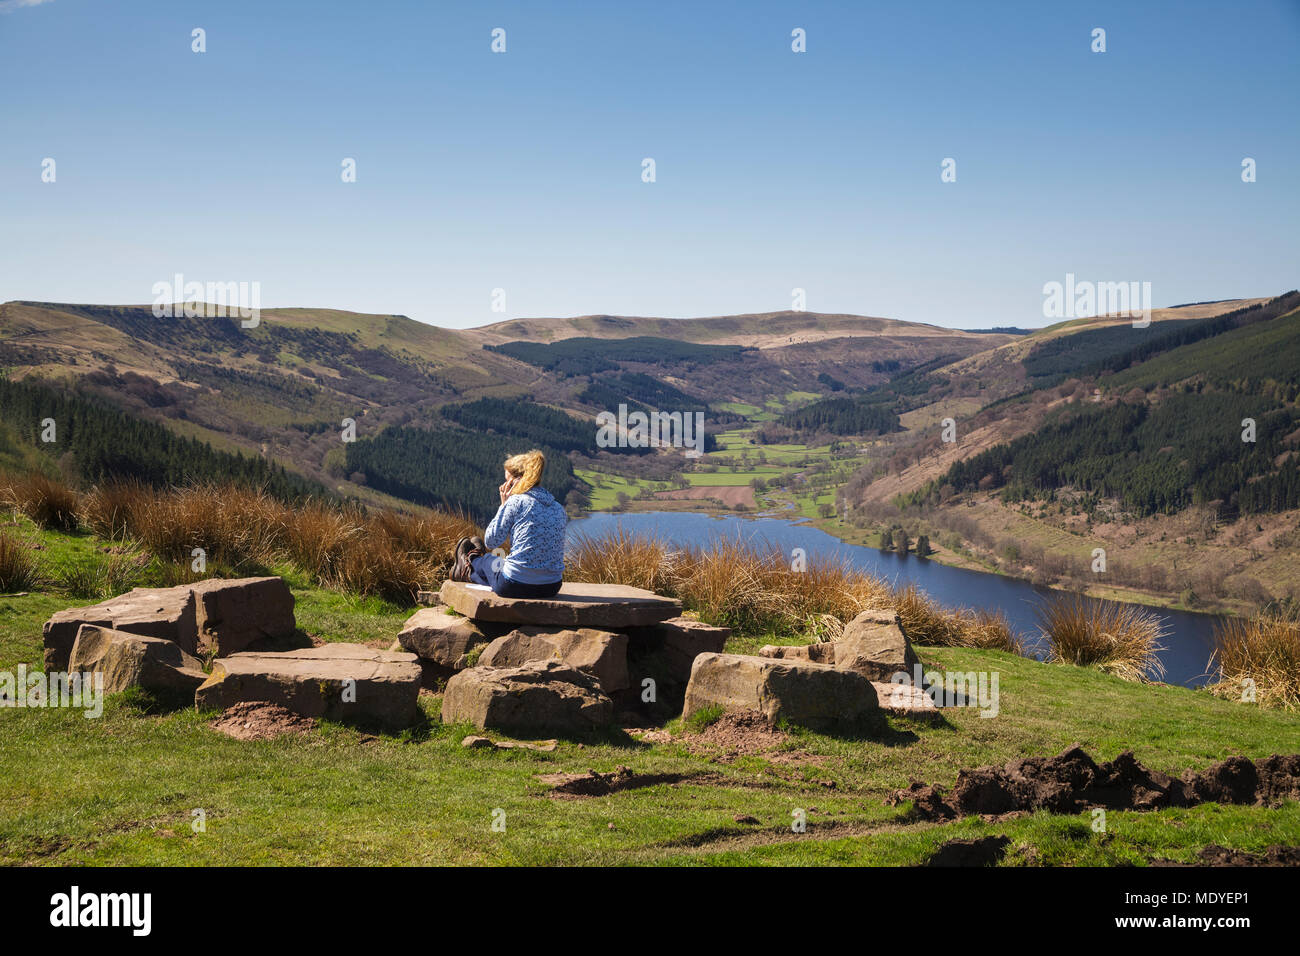 Woman Looking Down onto the Talybont Valley and Reservoir in the Brecon Beacons National Park - Stock Image